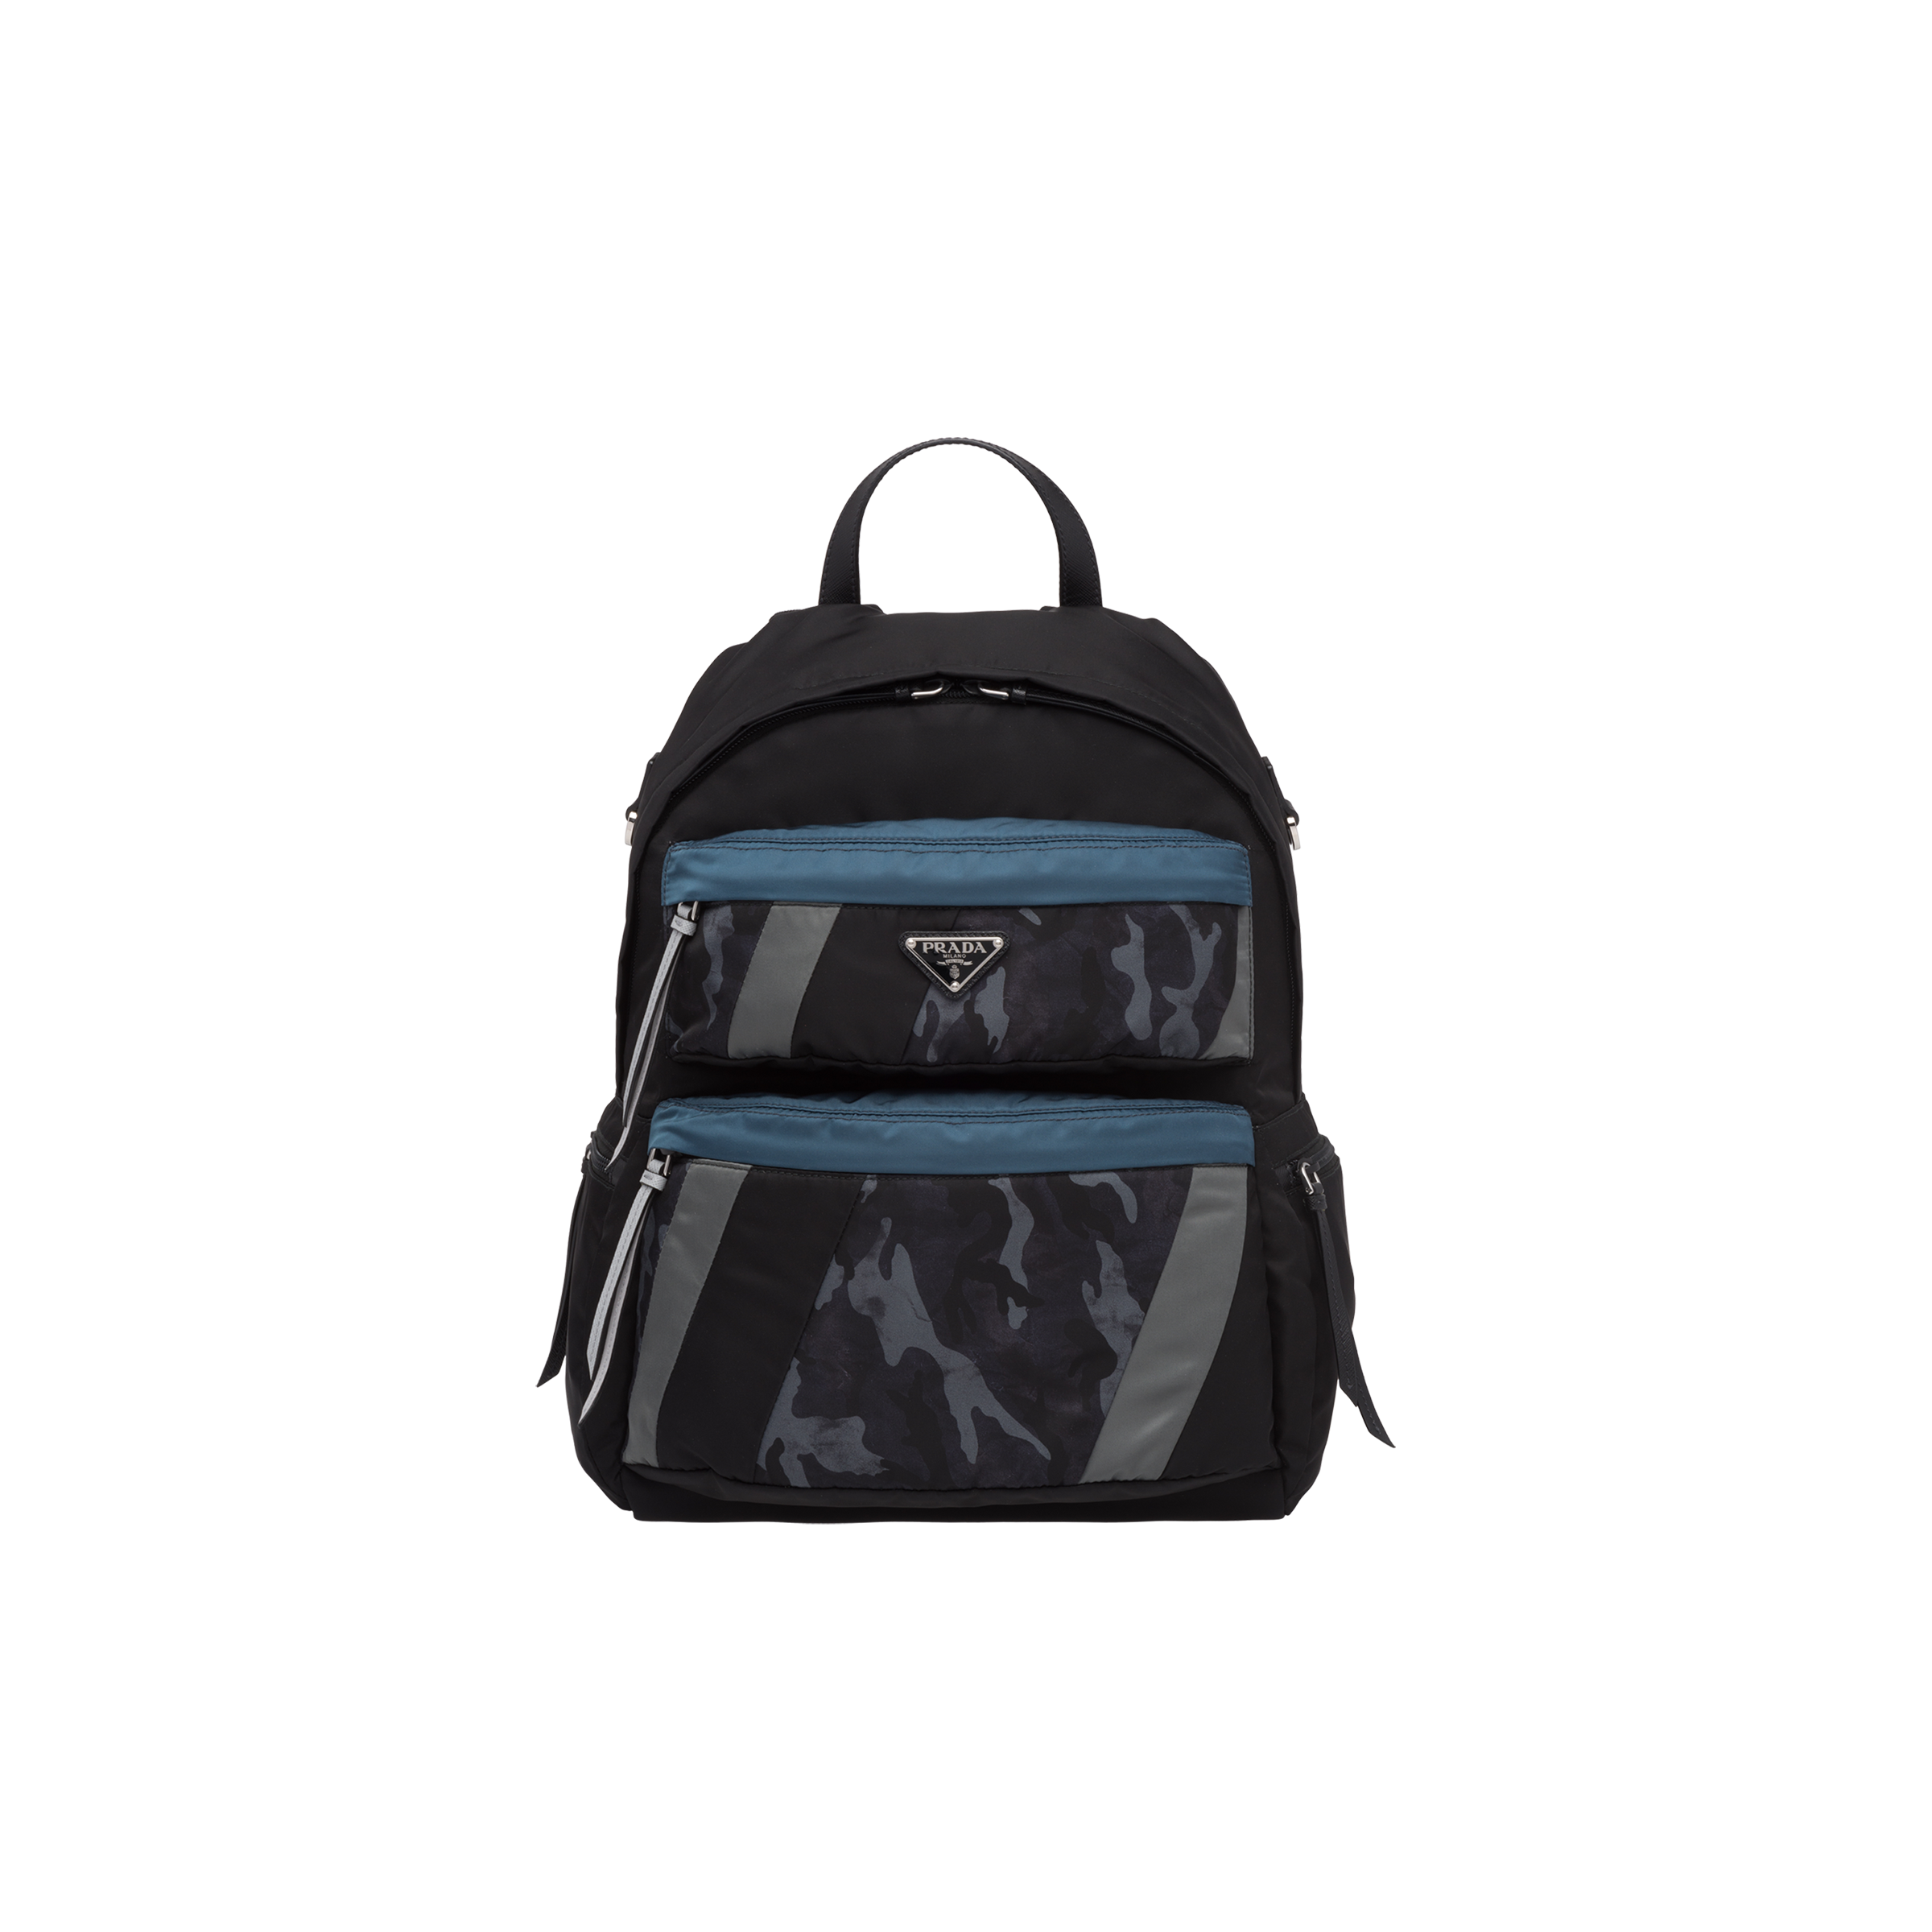 7d2477e8b88e Men's Backpacks | Prada